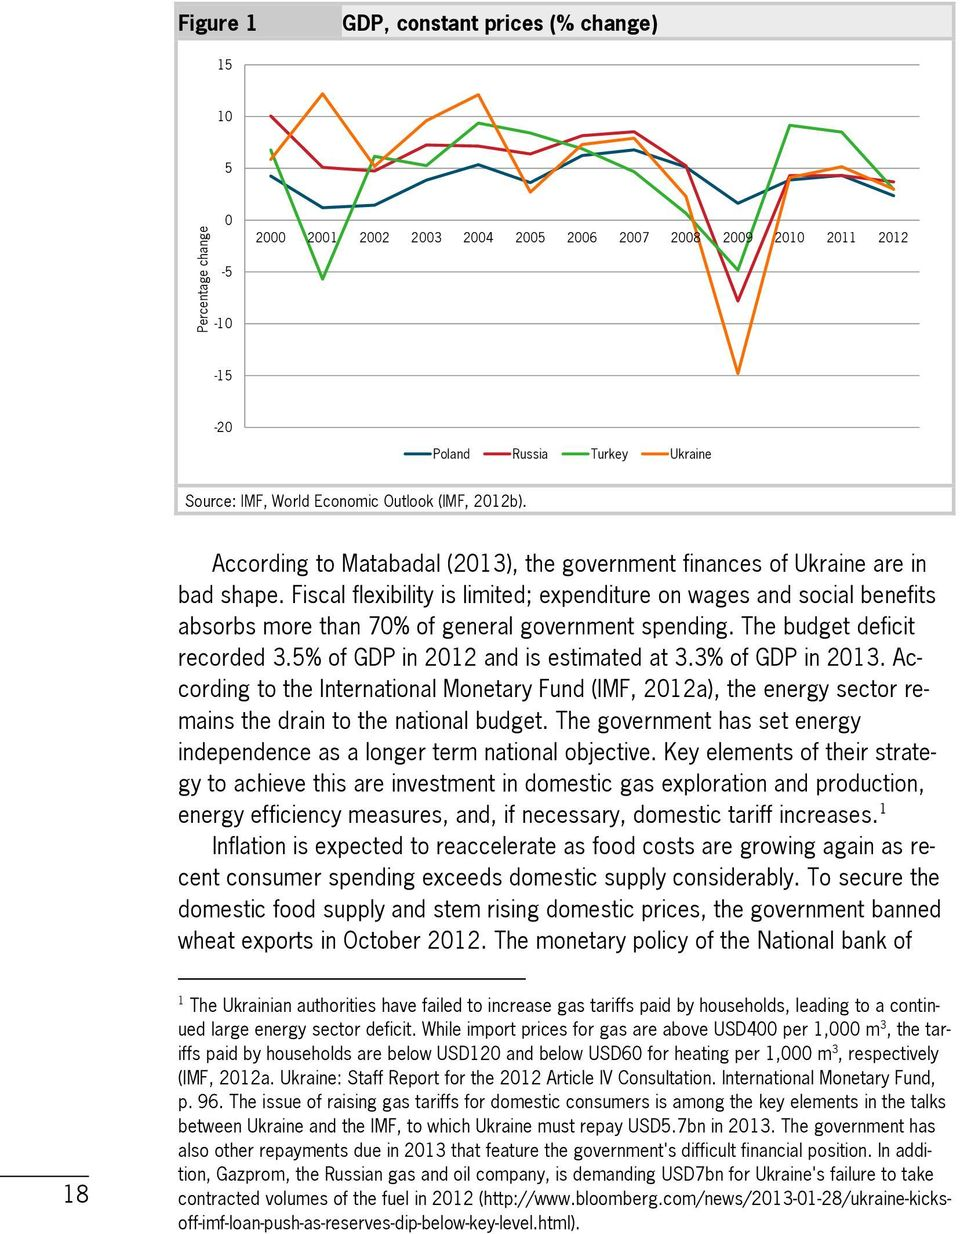 Fiscal flexibility is limited; expenditure on wages and social benefits absorbs more than 70% of general government spending. The budget deficit recorded 3.5% of GDP in 2012 and is estimated at 3.